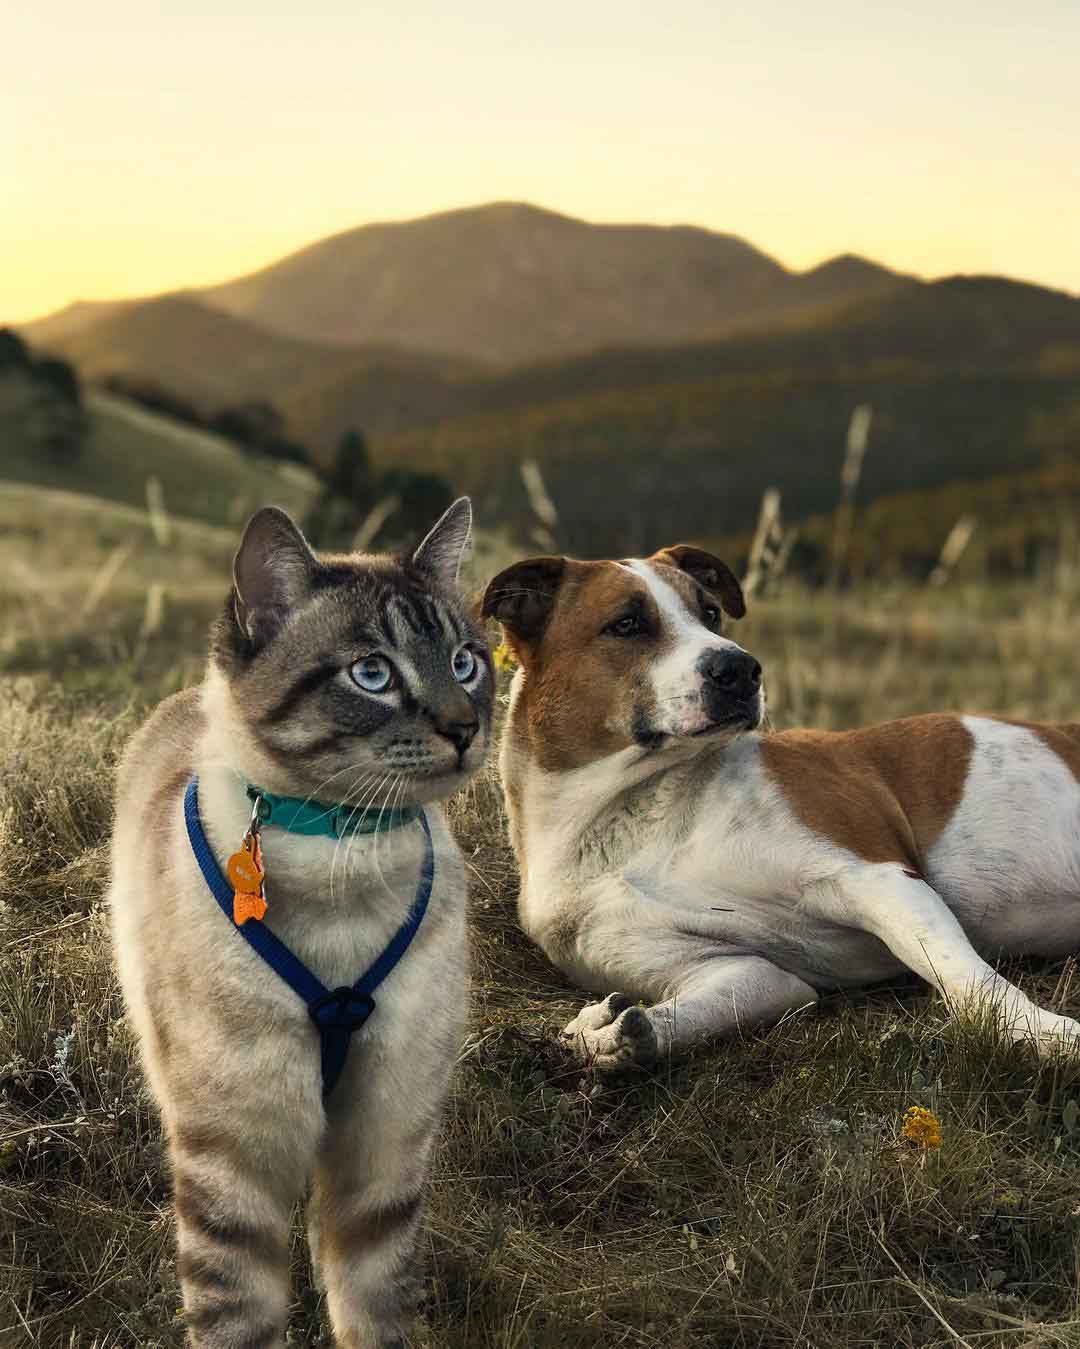 cat dog travel together Henry Baloo Cynthia Bennett Andre Sibilsky